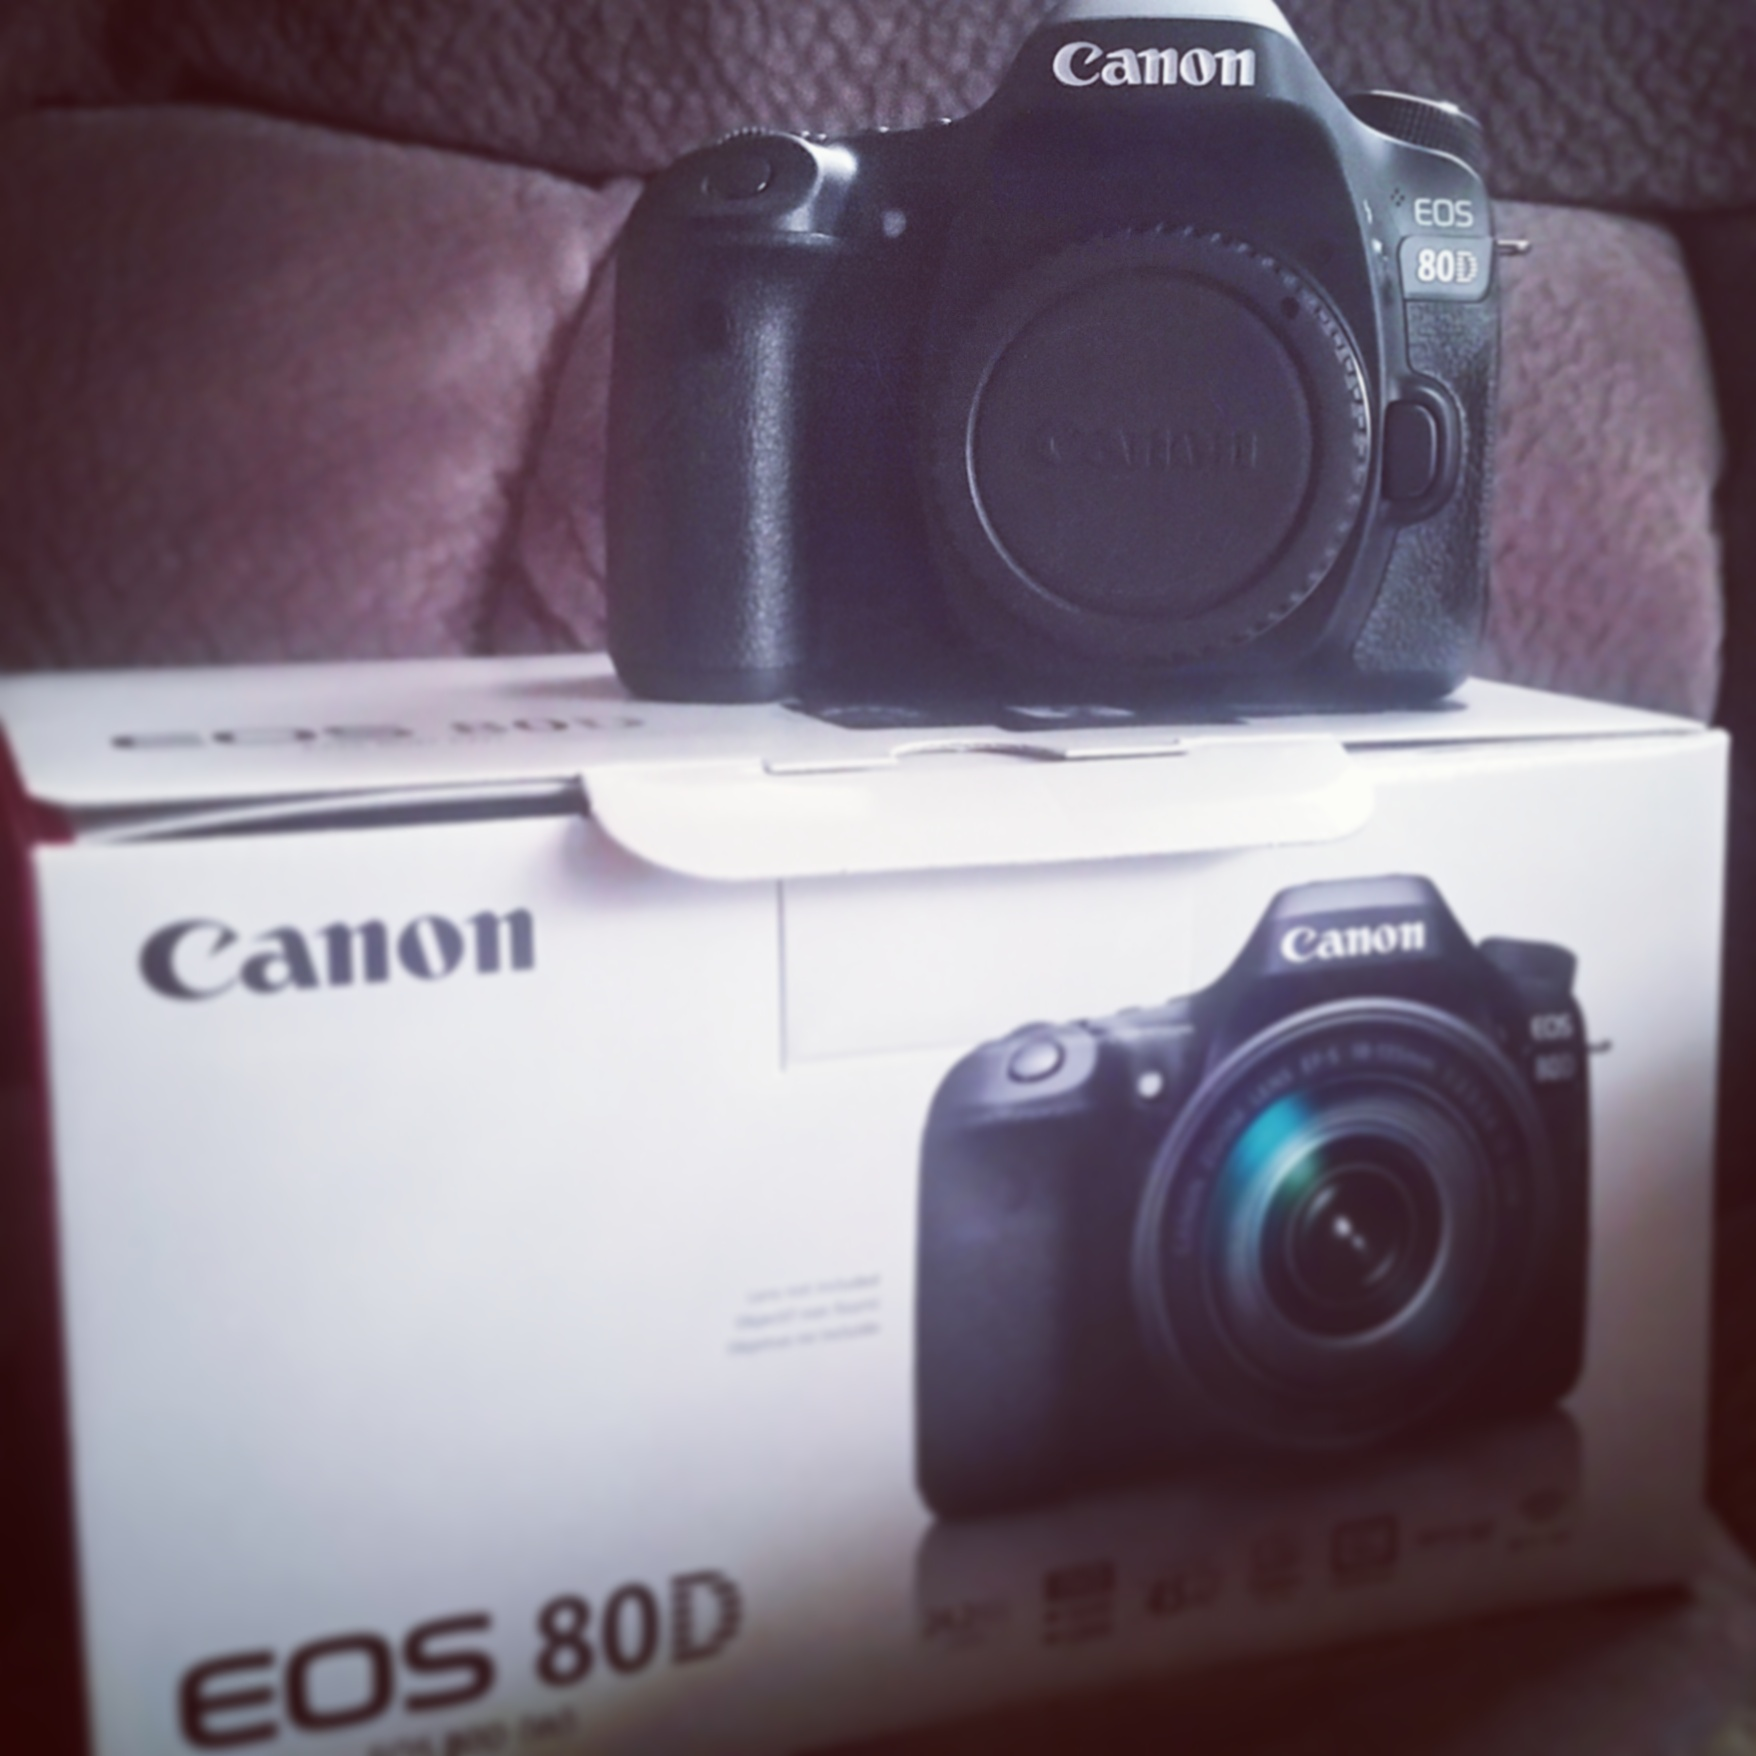 My new canon 80d